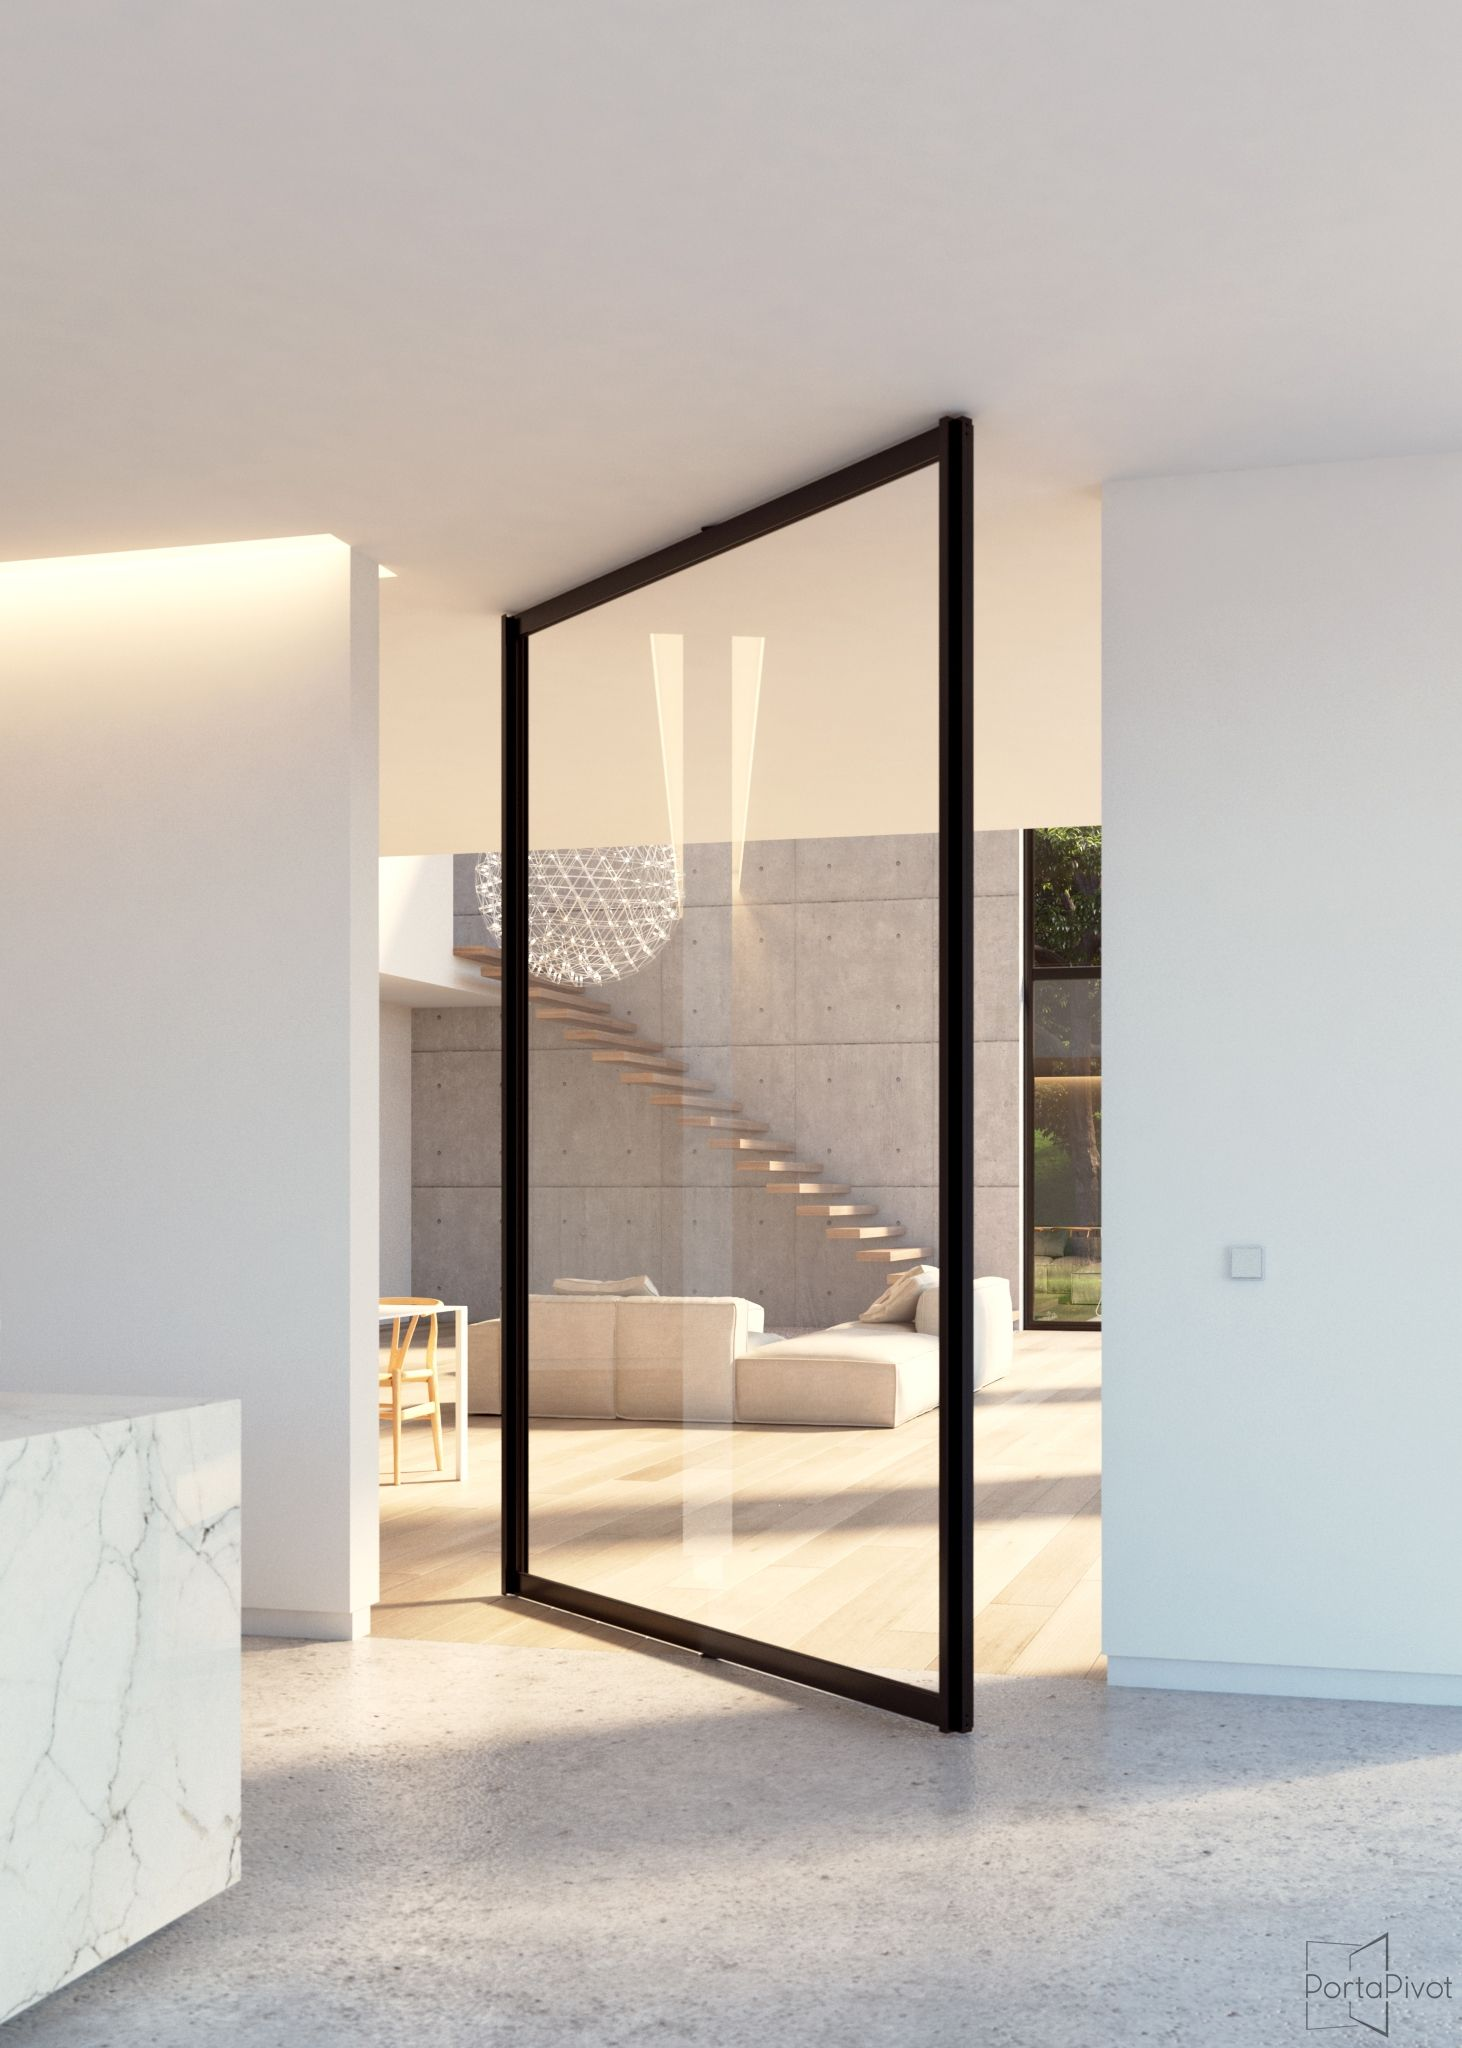 Le Meilleur Steel Look Glass Pivot Door With Central Axis Pivoting Ce Mois Ci